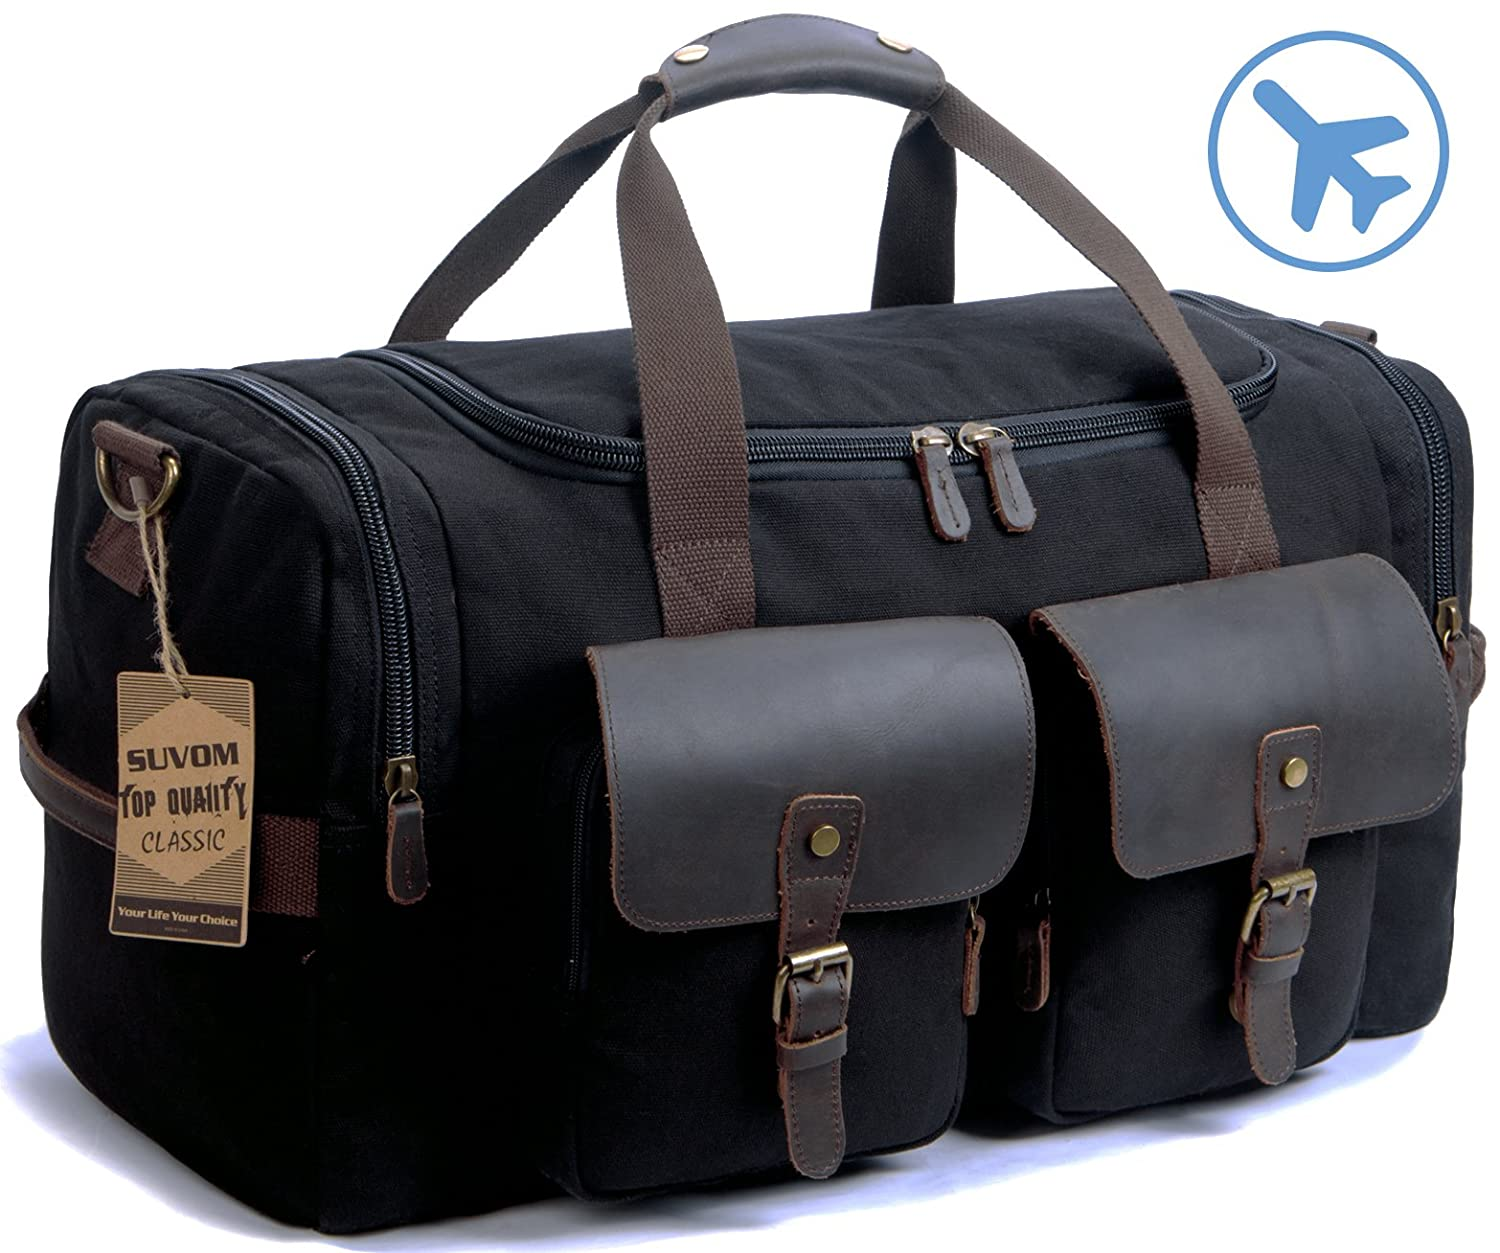 SUVOM Canvas Duffle Bag Genuine Leather Weekend Bag Carry On Travel Tote Duffel Weekender Luggage Oversized Holdalls Handbag for Men and Women with Shoulder Strap